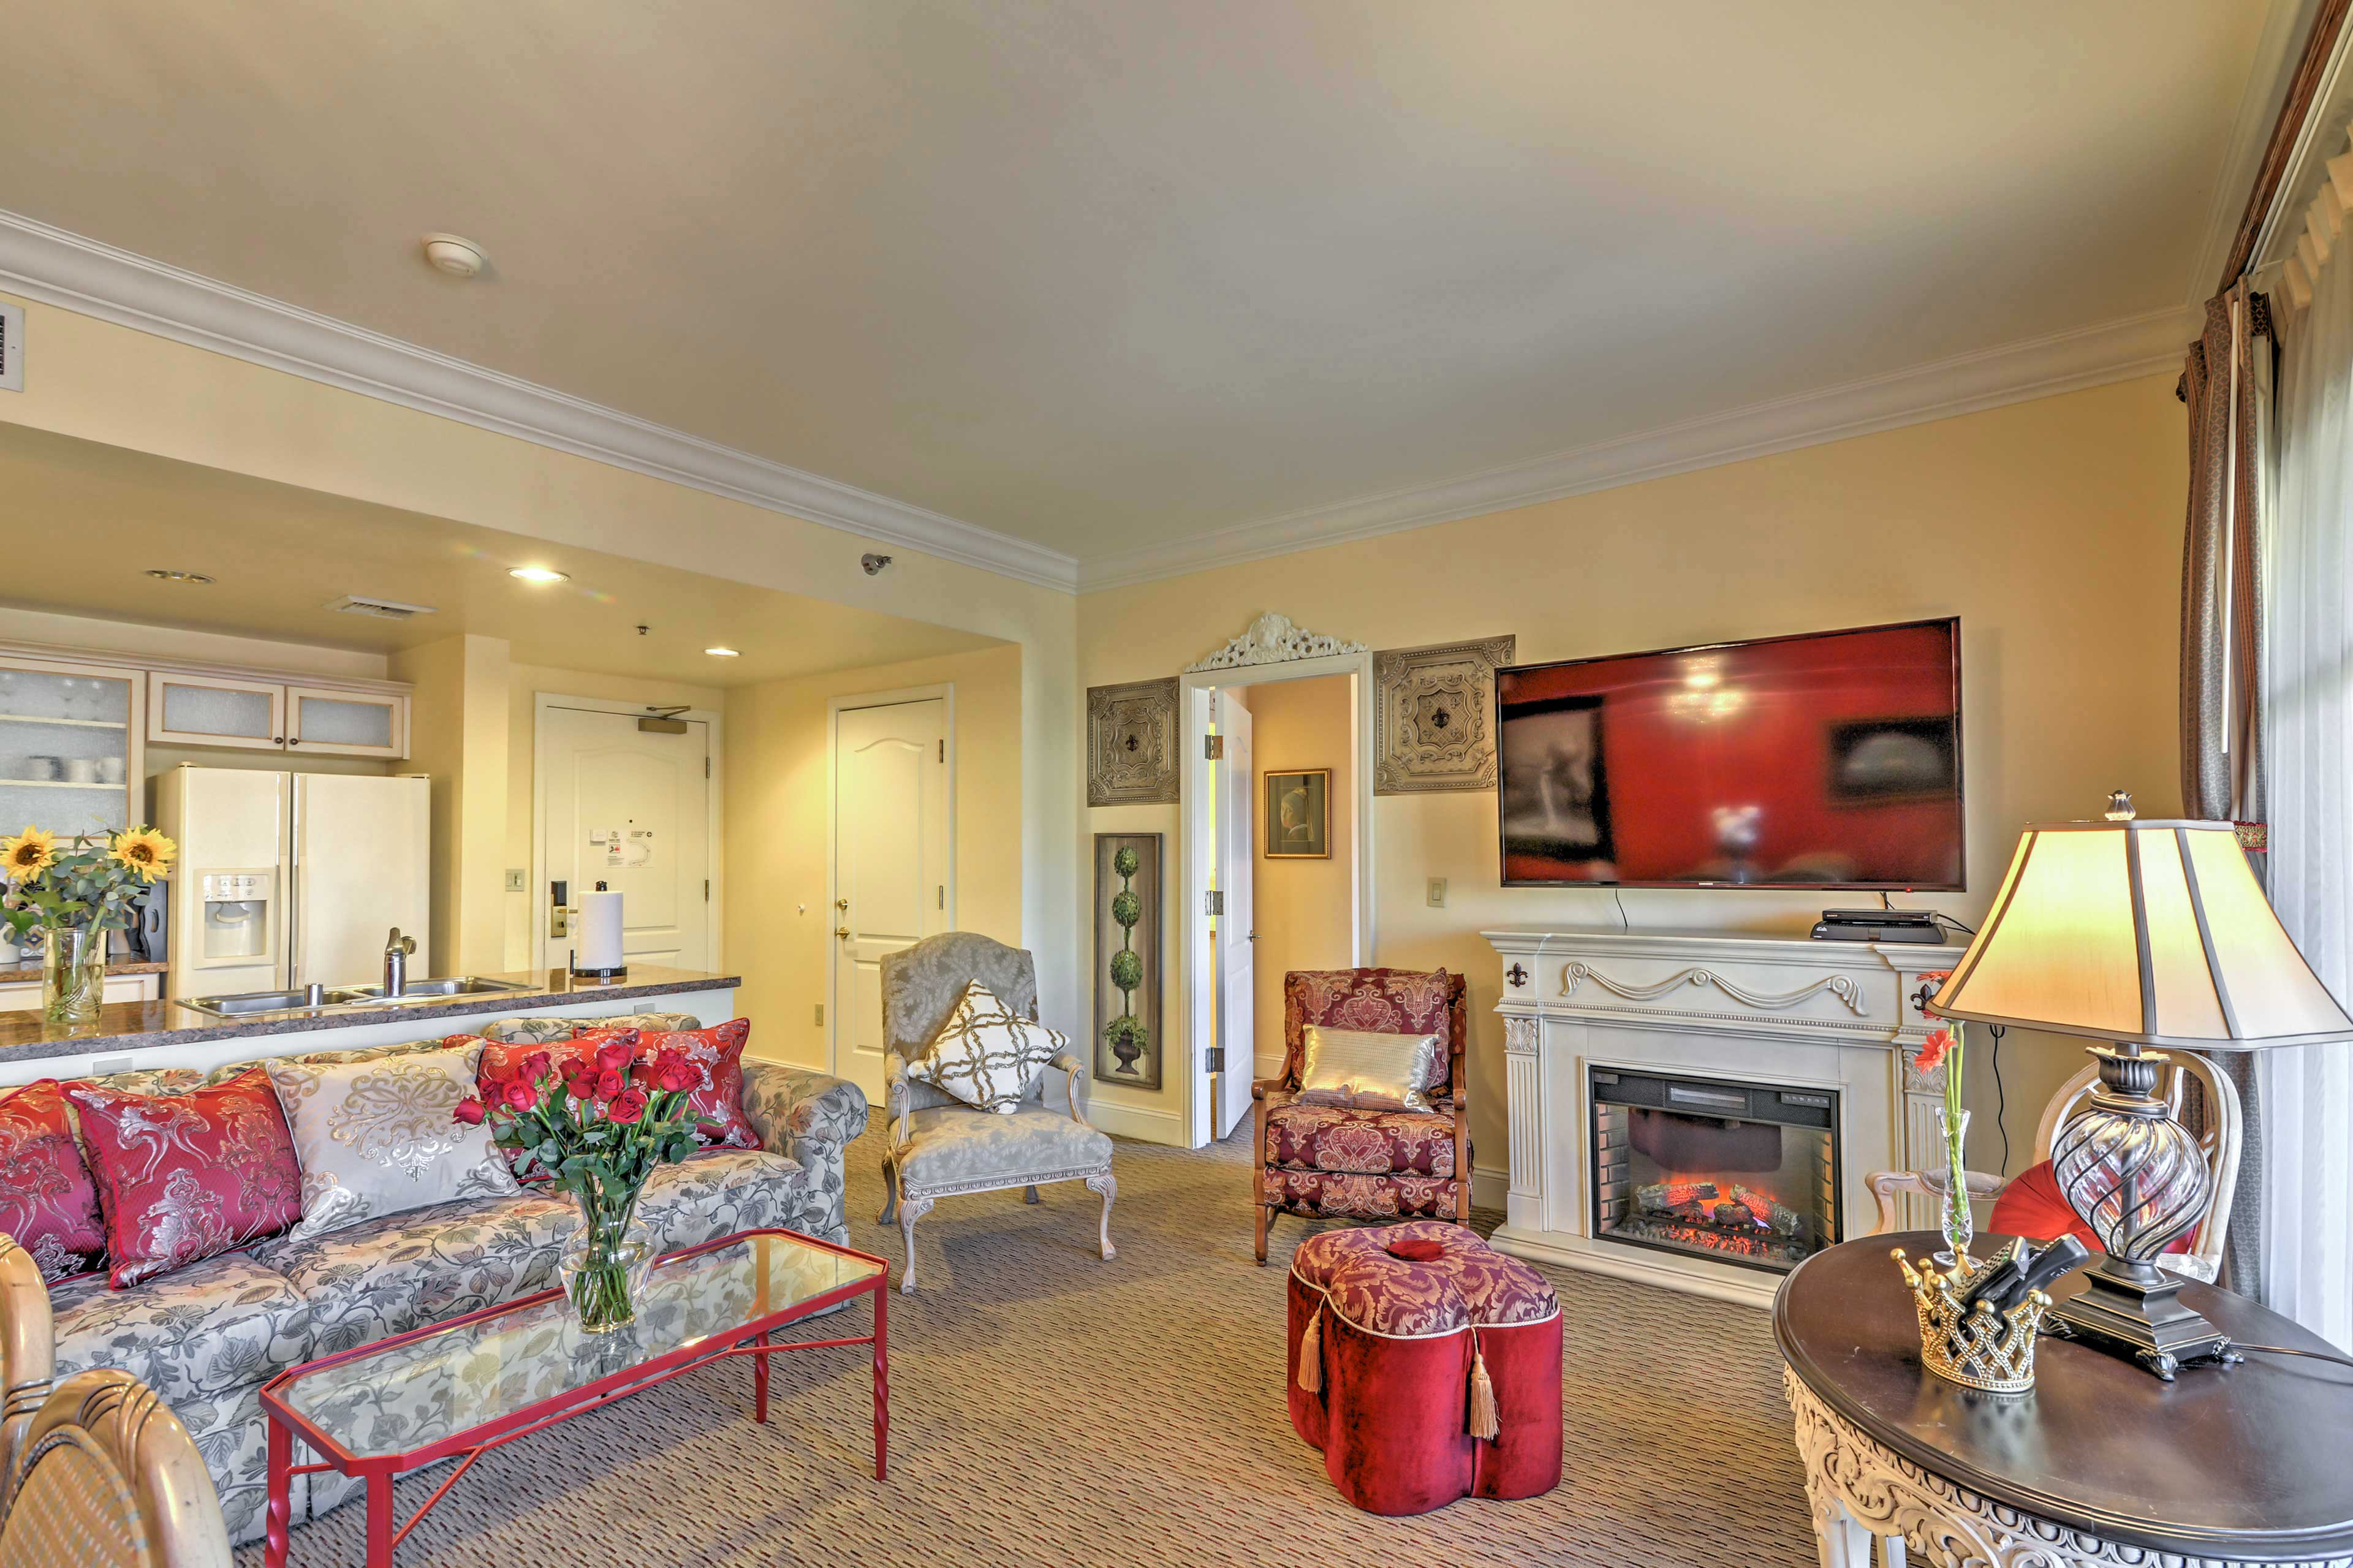 You'll feel right at home inside the inviting living room.